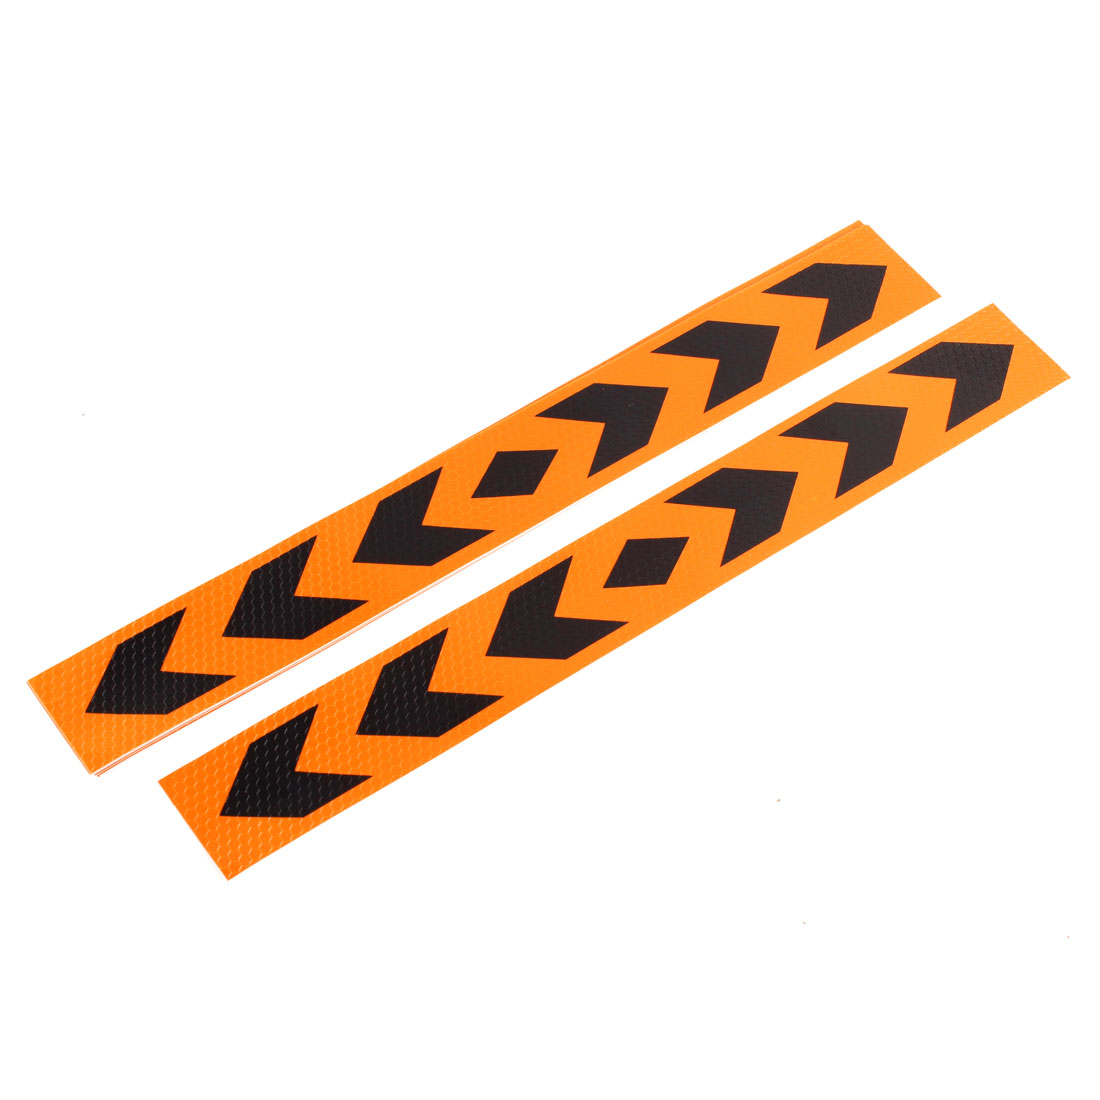 10 Pcs 40cm x 5cm Orange Black Self Adhesive Reflective Sticker Decal for Car